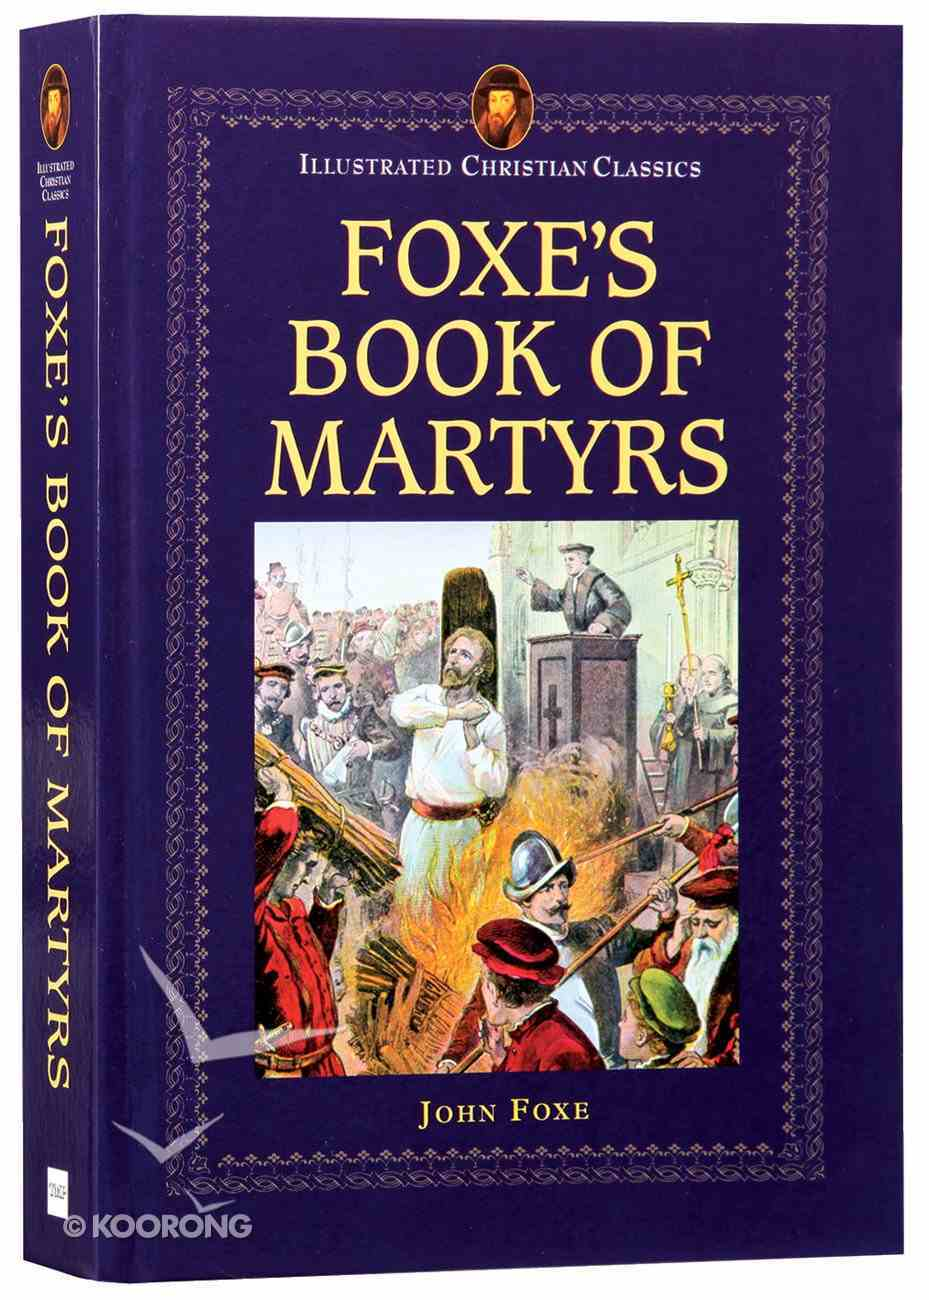 Icc: Foxe's Book of Martyrs (Illustrated Christian Classics) (Illustrated Christian Classics Series) Hardback